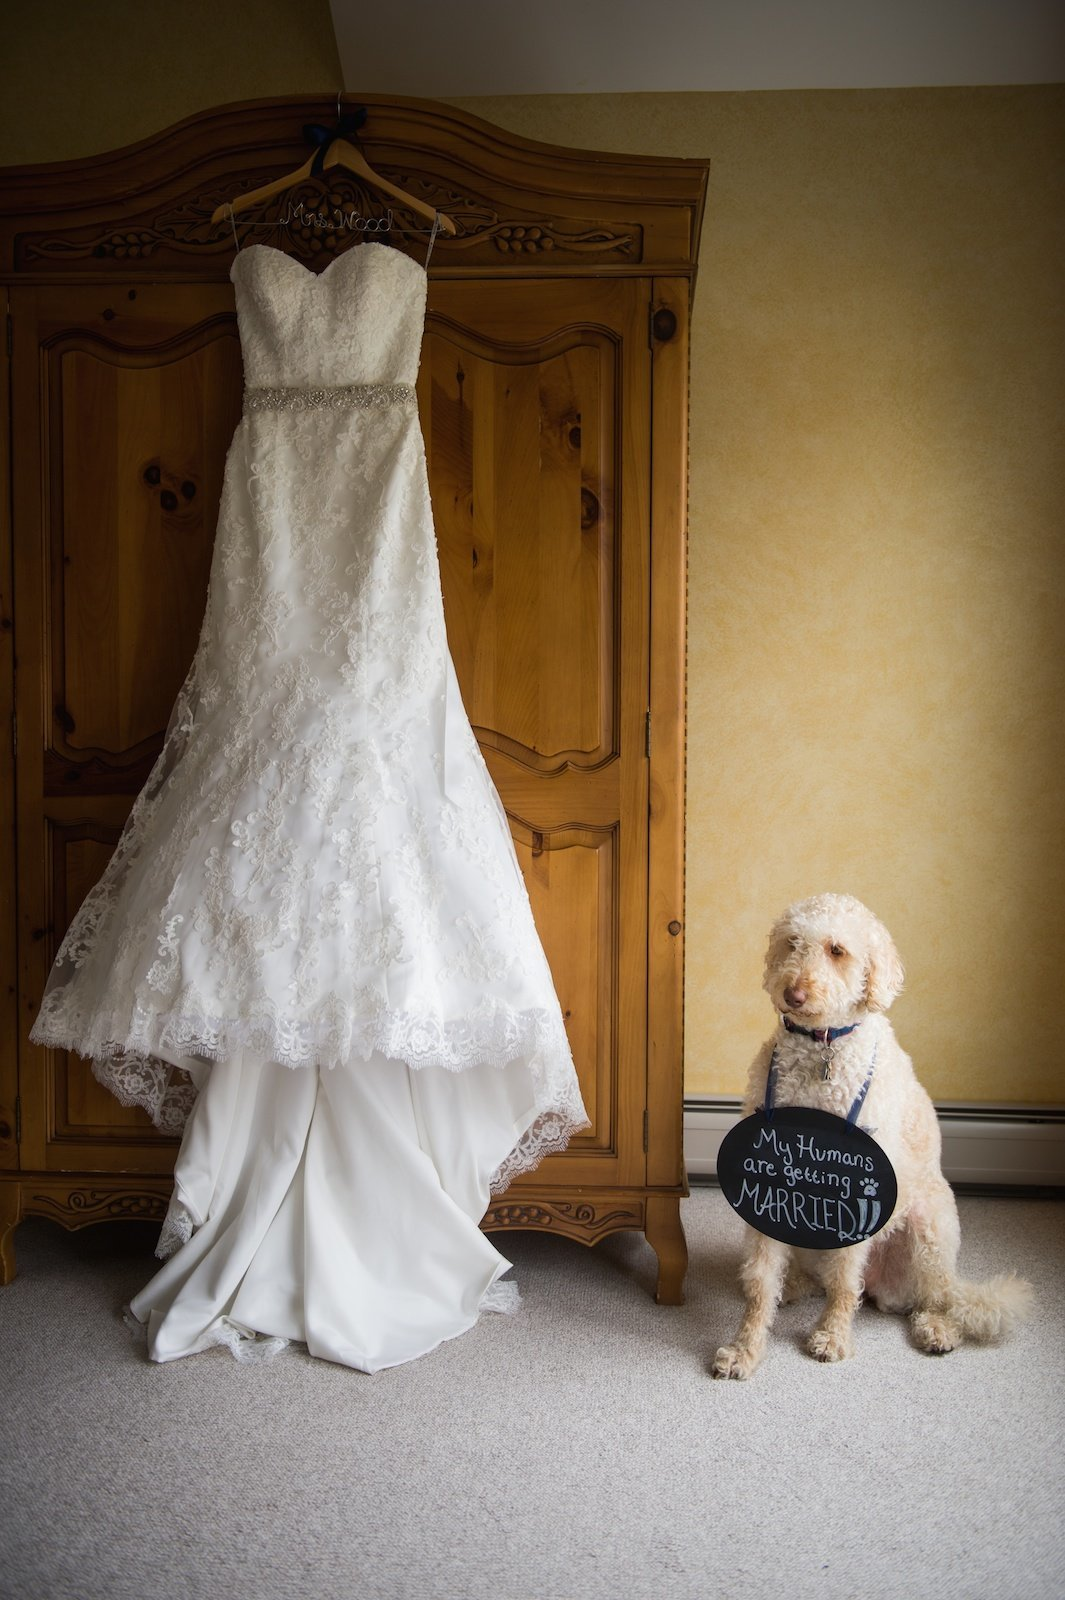 fine art wedding photo of the bride's dog sitting next to the wedding dress  at the Red Clover Inn